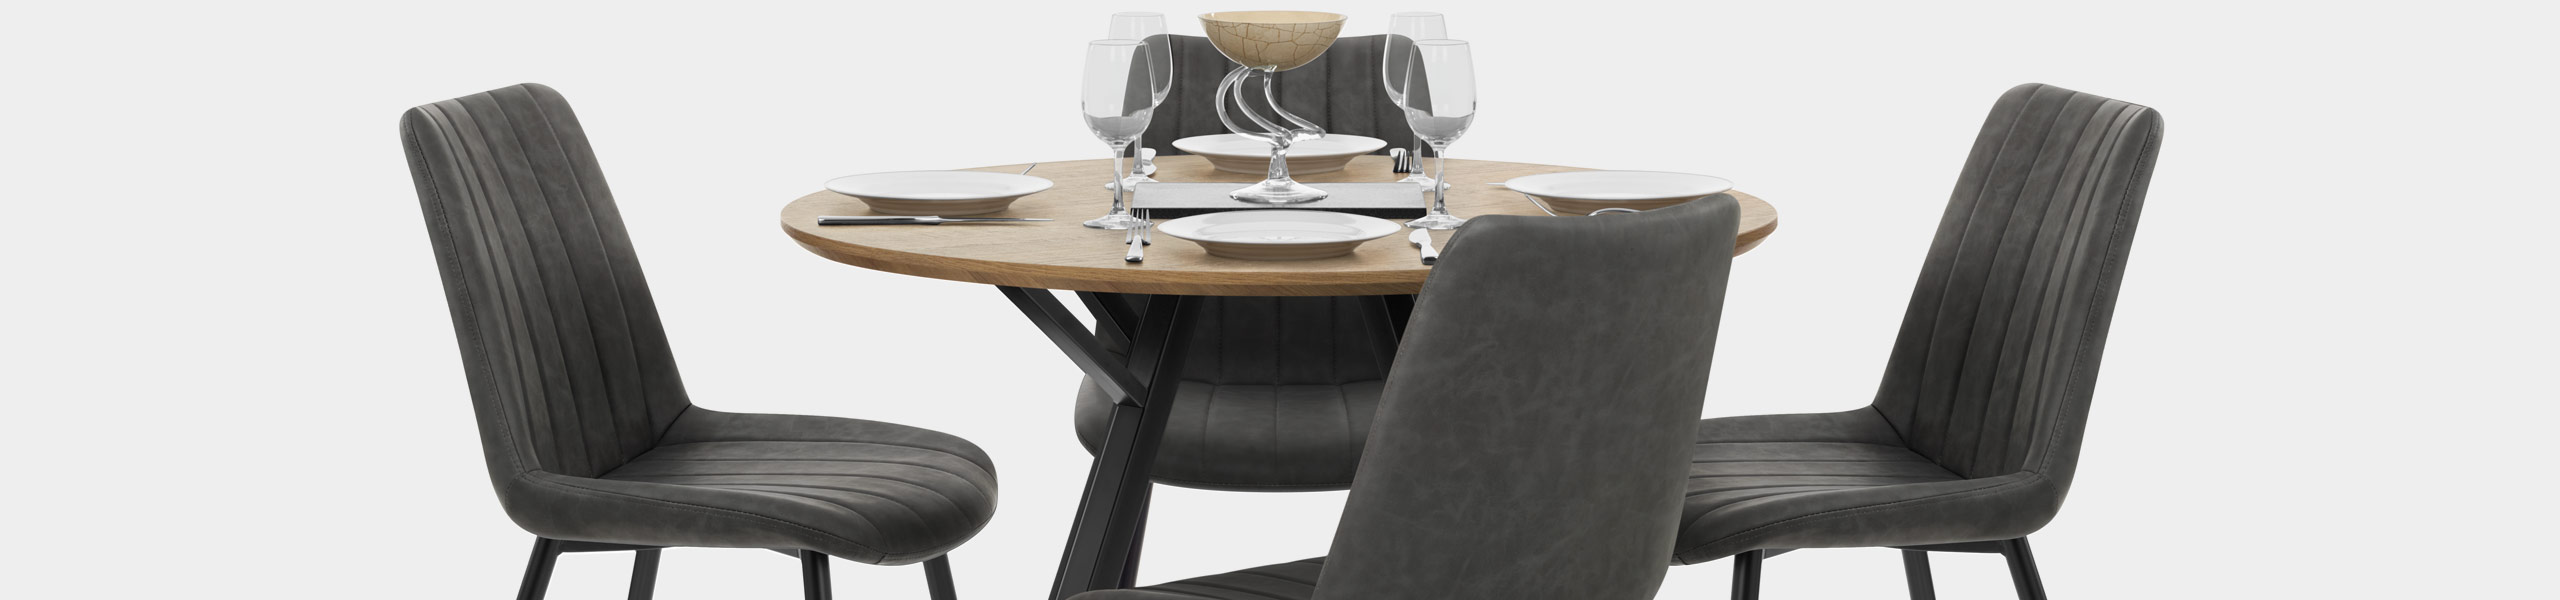 Quest 100cm Dining Table Oak Video Banner